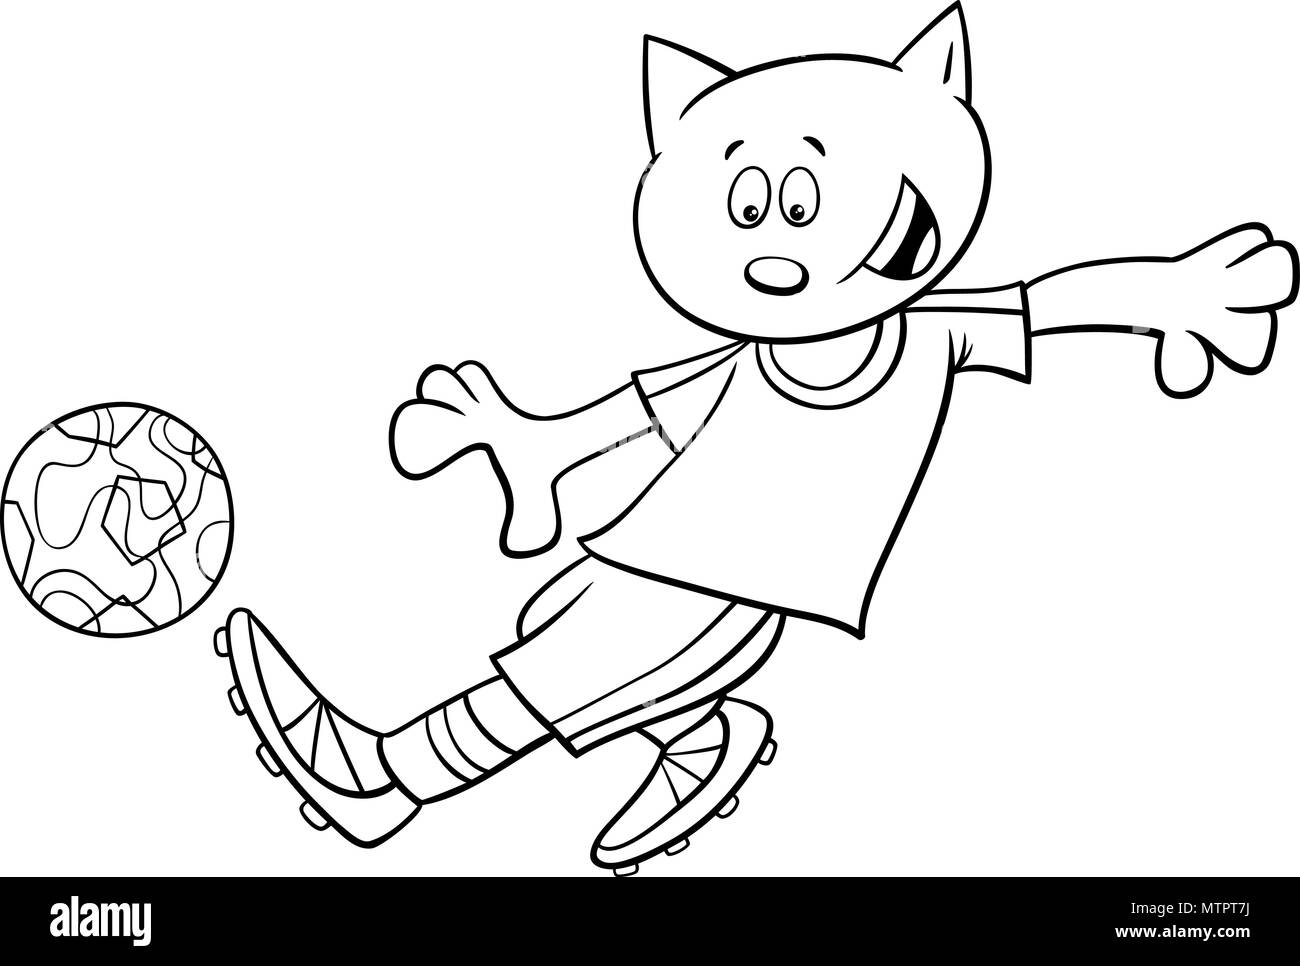 Black and White Cartoon Illustrations of Cat Football or Soccer ...